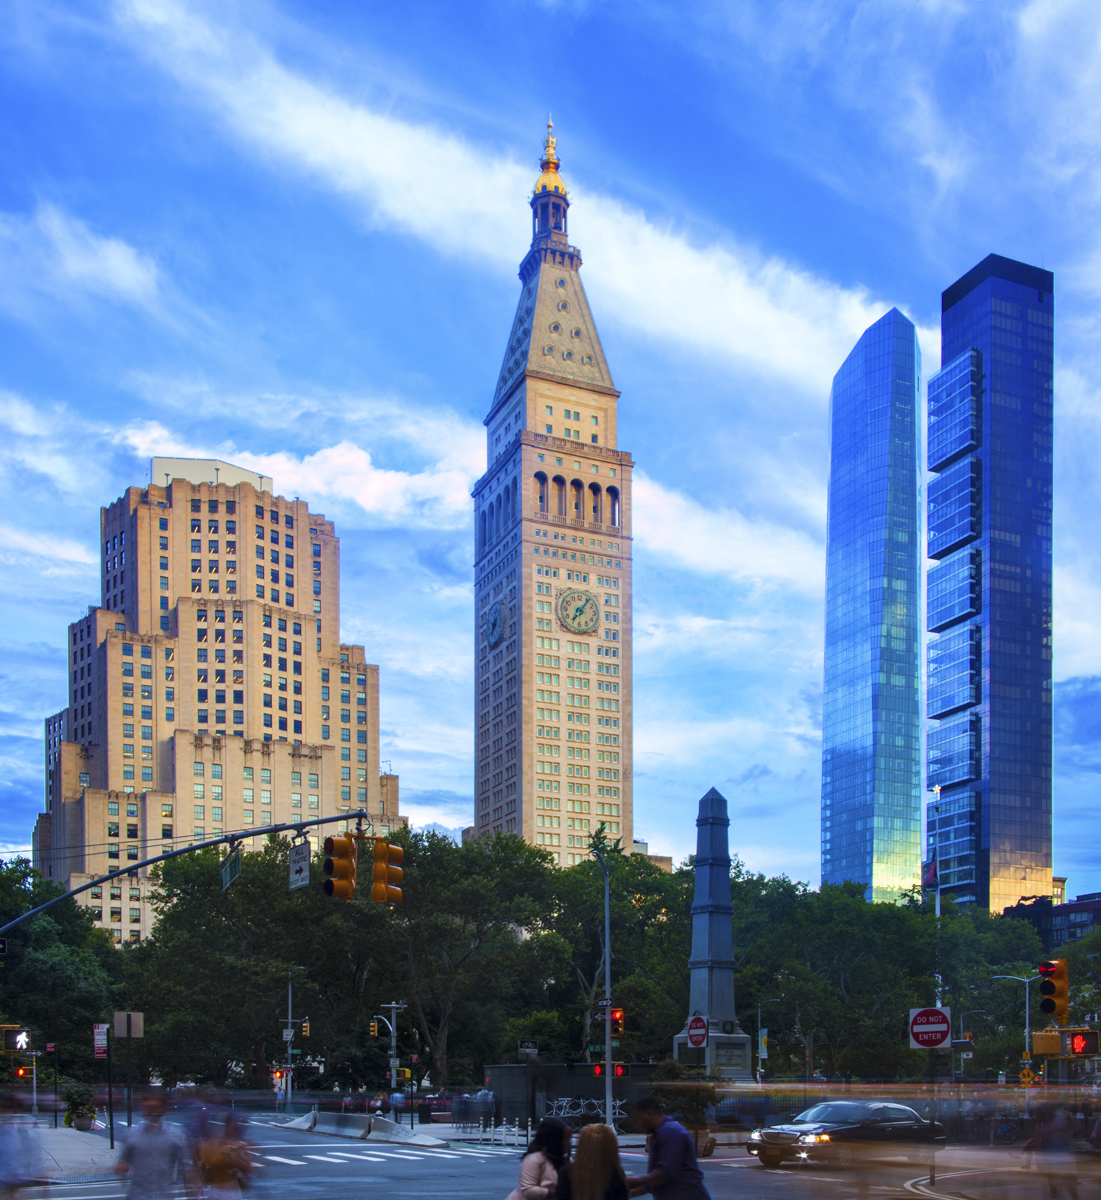 katrina-eugenia-cushman-and-wakefield-commercial-realestate-commercial-real-estate-architecture-photography-pictures-of-new-york-katrina-eugenia-photography-real-estate-photography-view-shots37.jpg